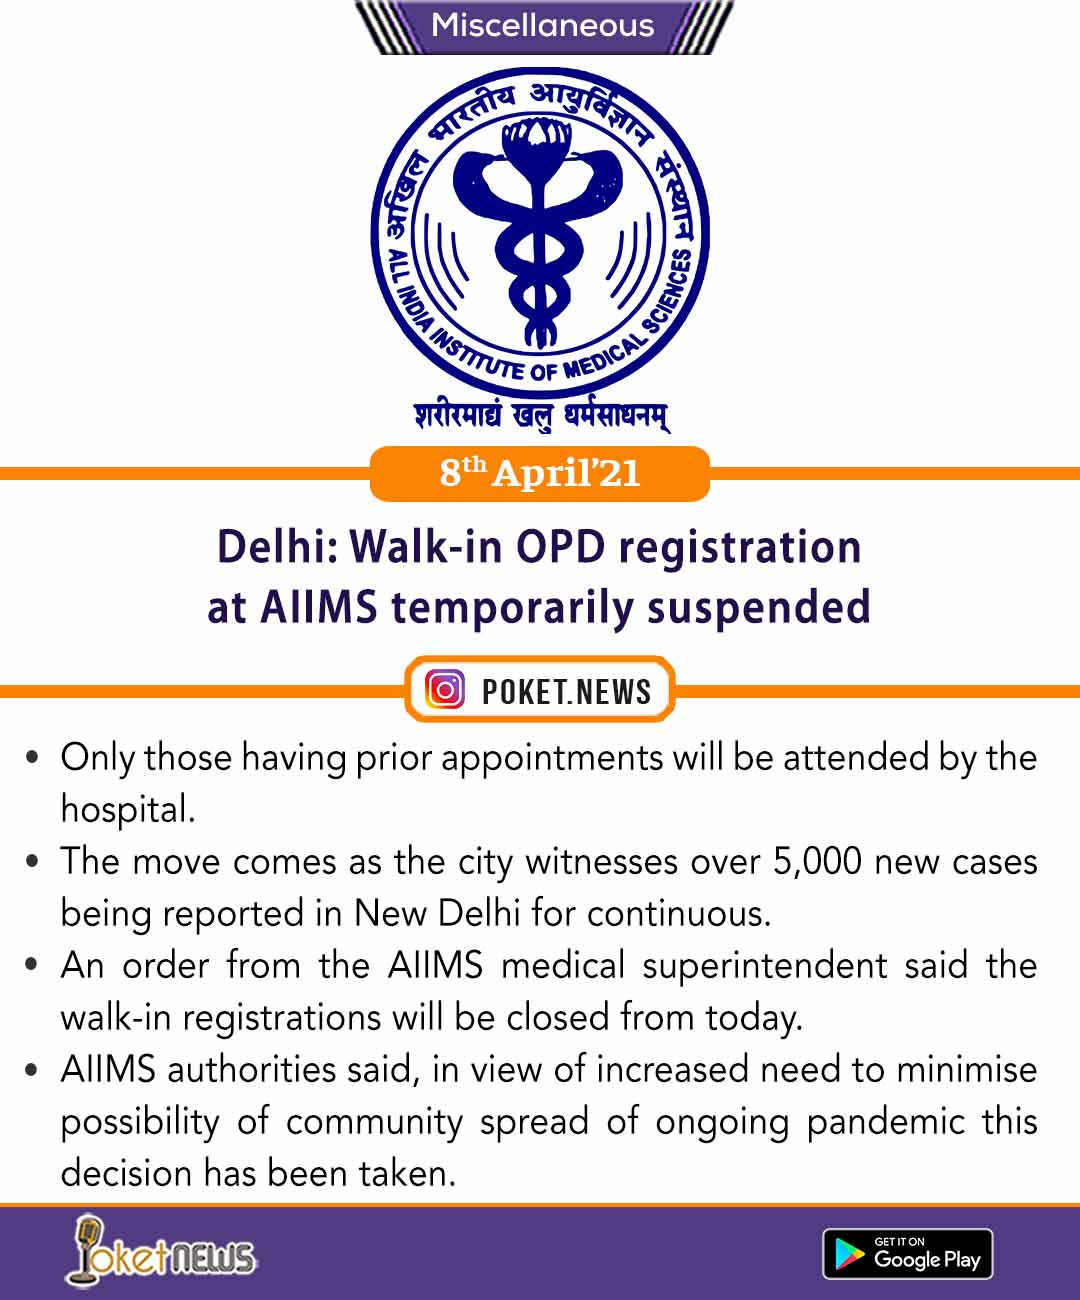 Delhi: Walk-in OPD registration at AIIMS temporarily suspended